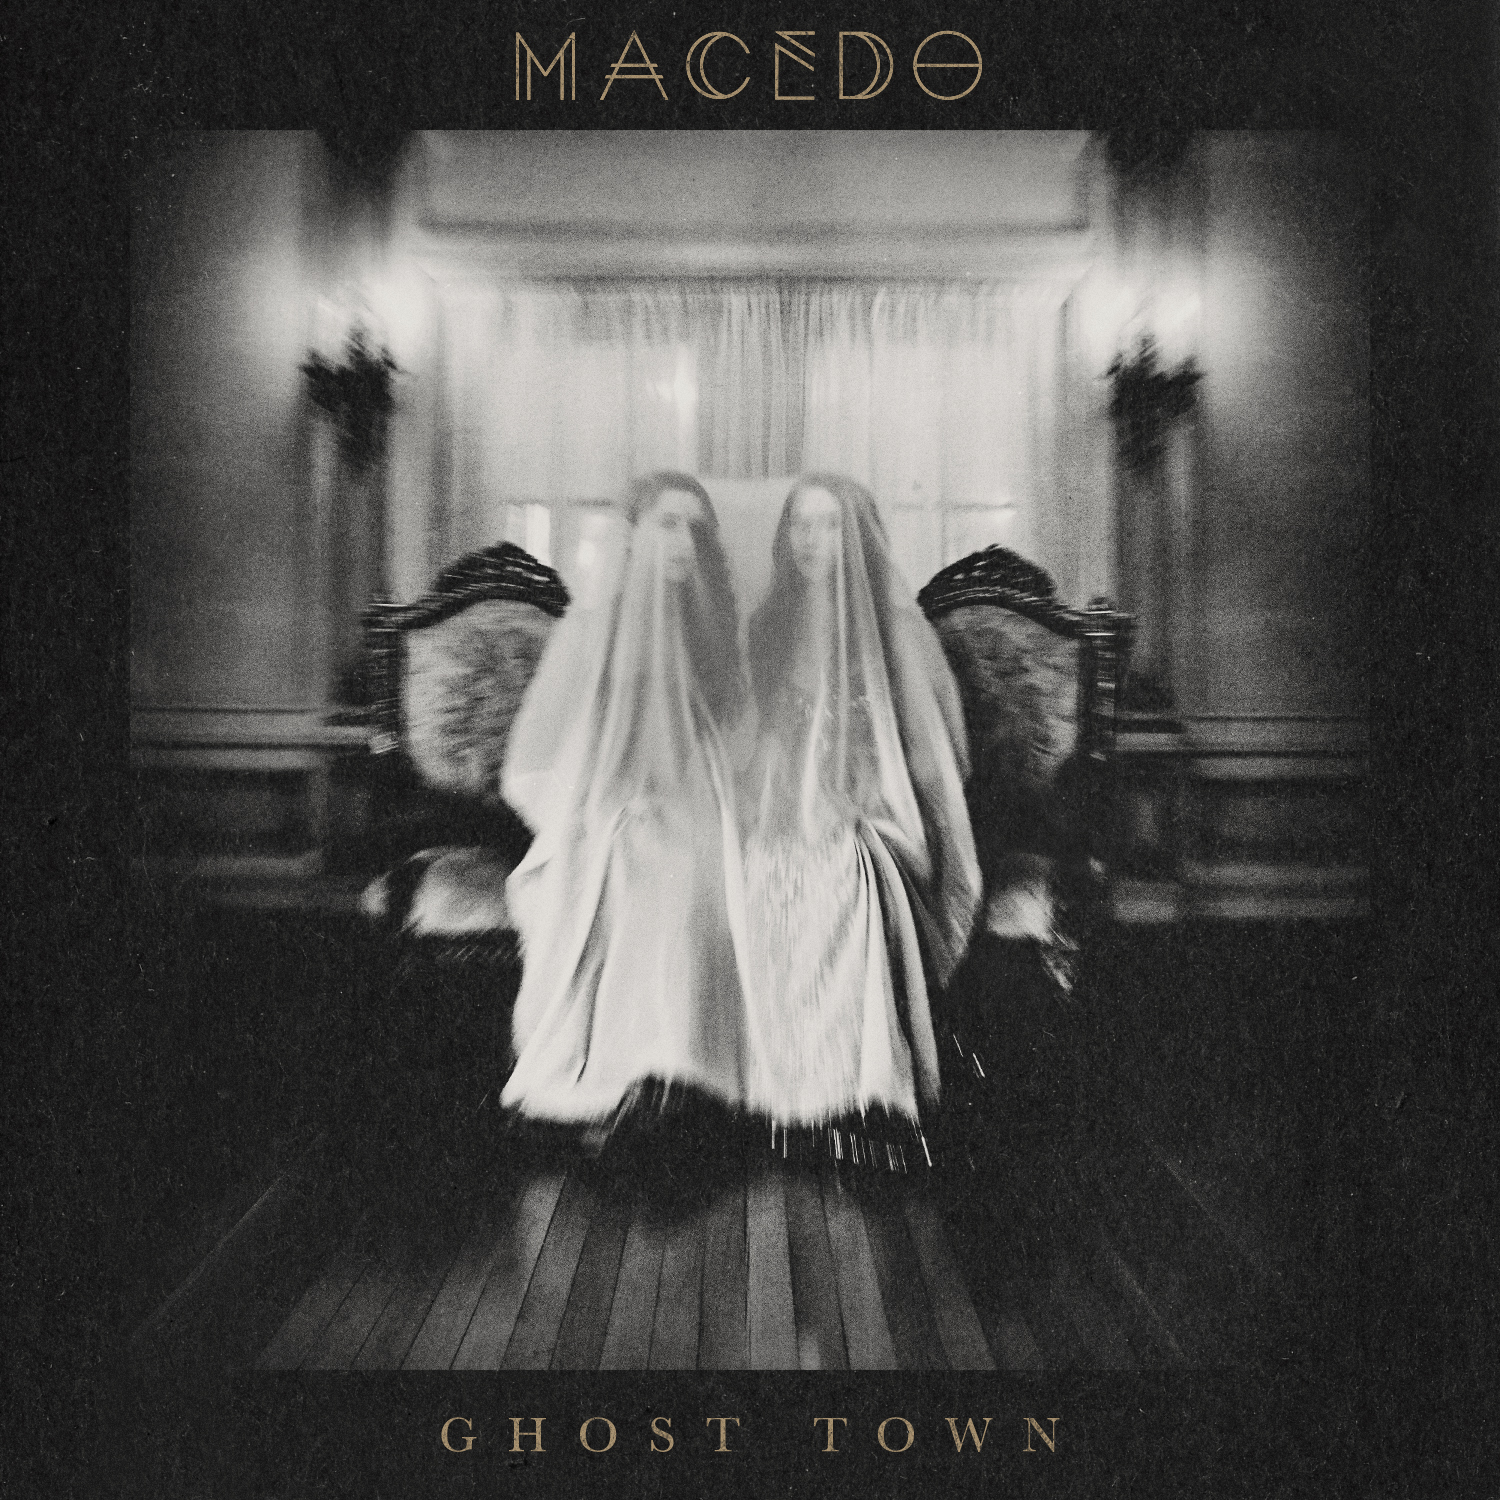 macedo_ghosttown-single_cover_final.jpg